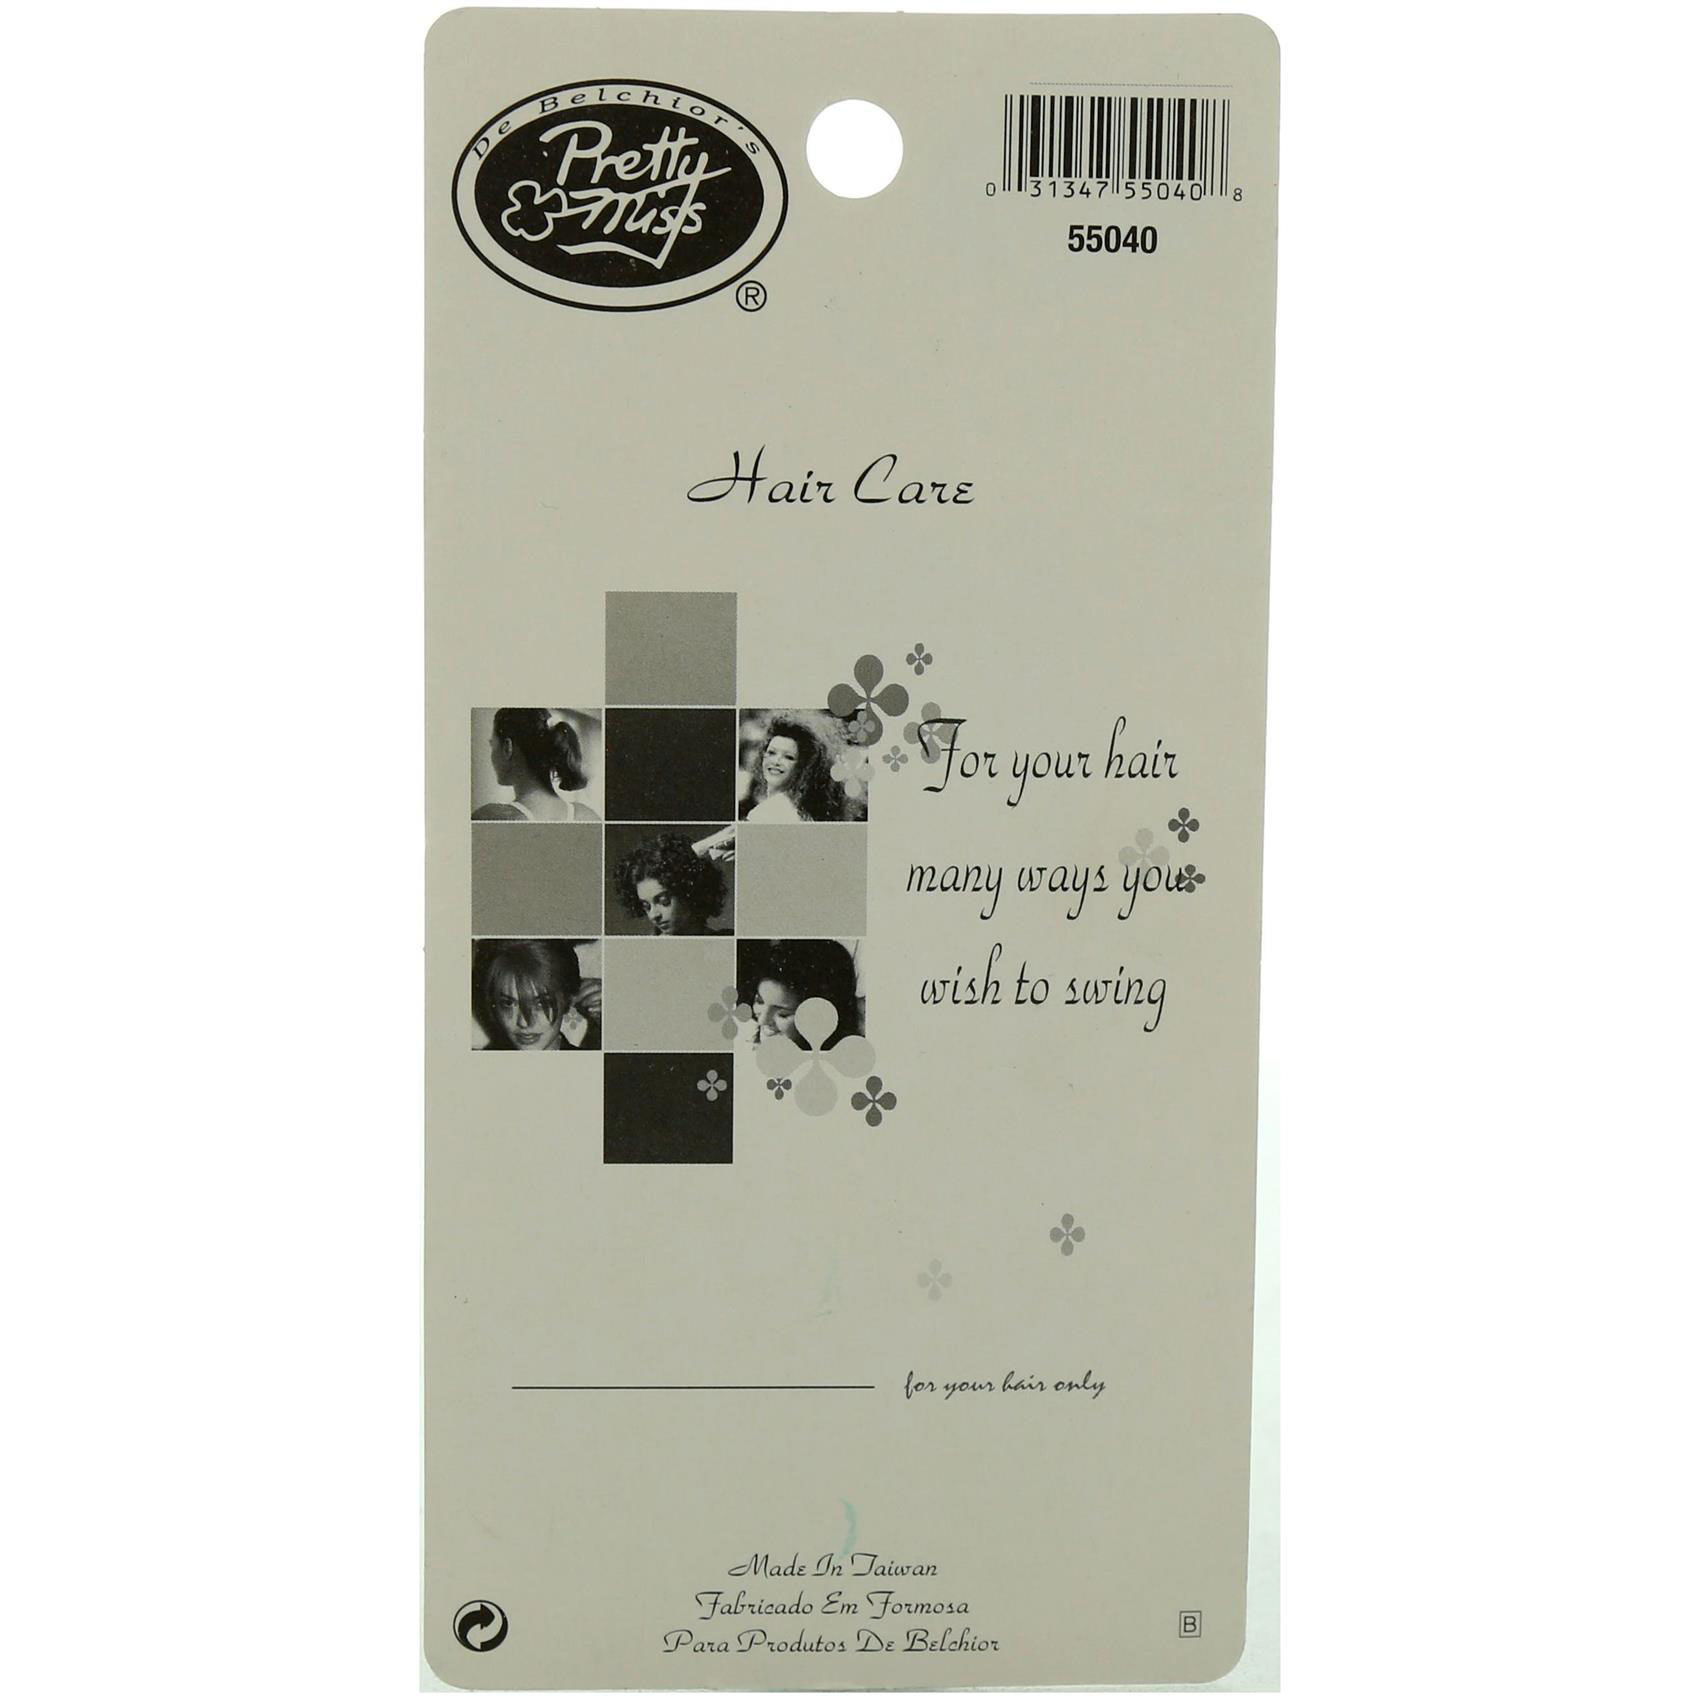 PRETTY MISS HAIR NET 55040